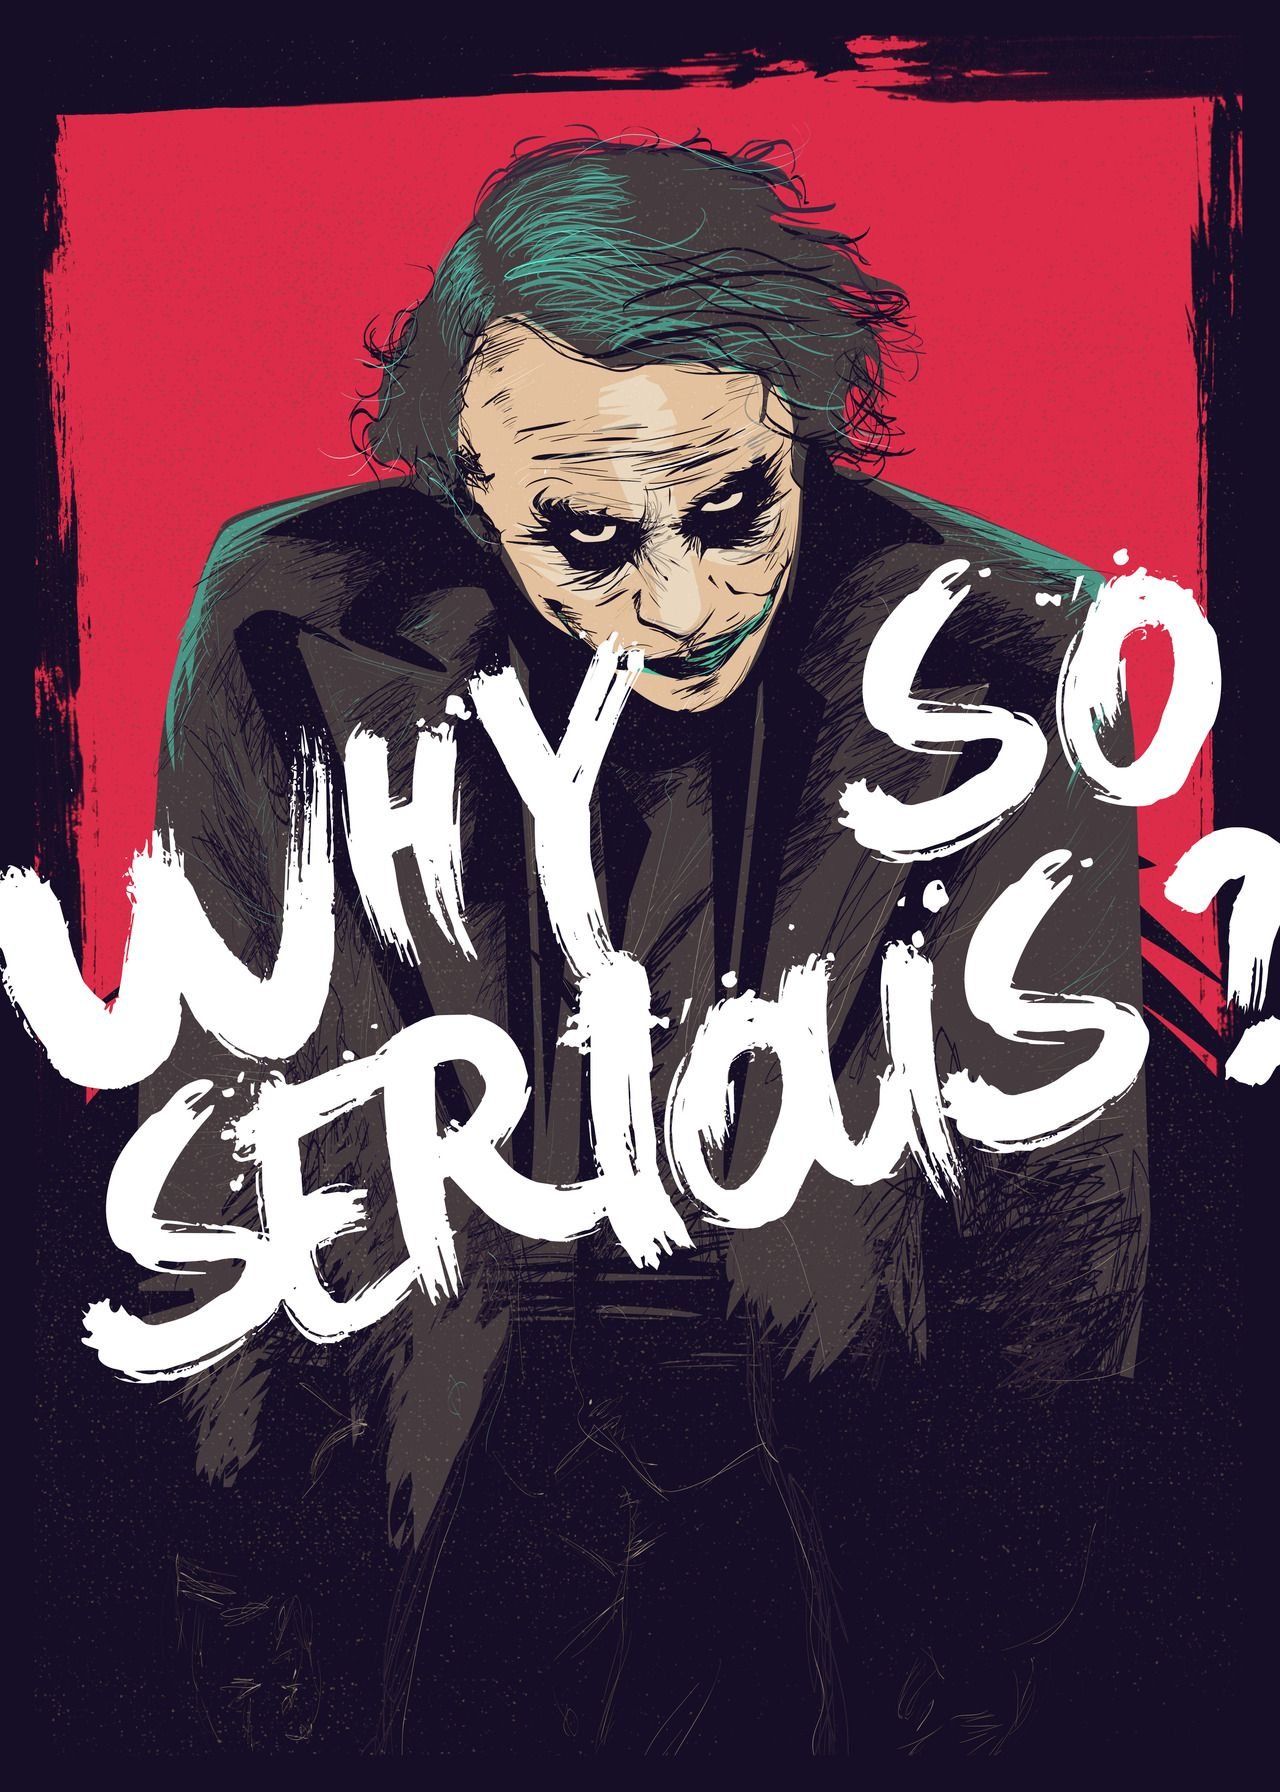 Daily Inspiration 1868 Joker art, Joker poster, Joker